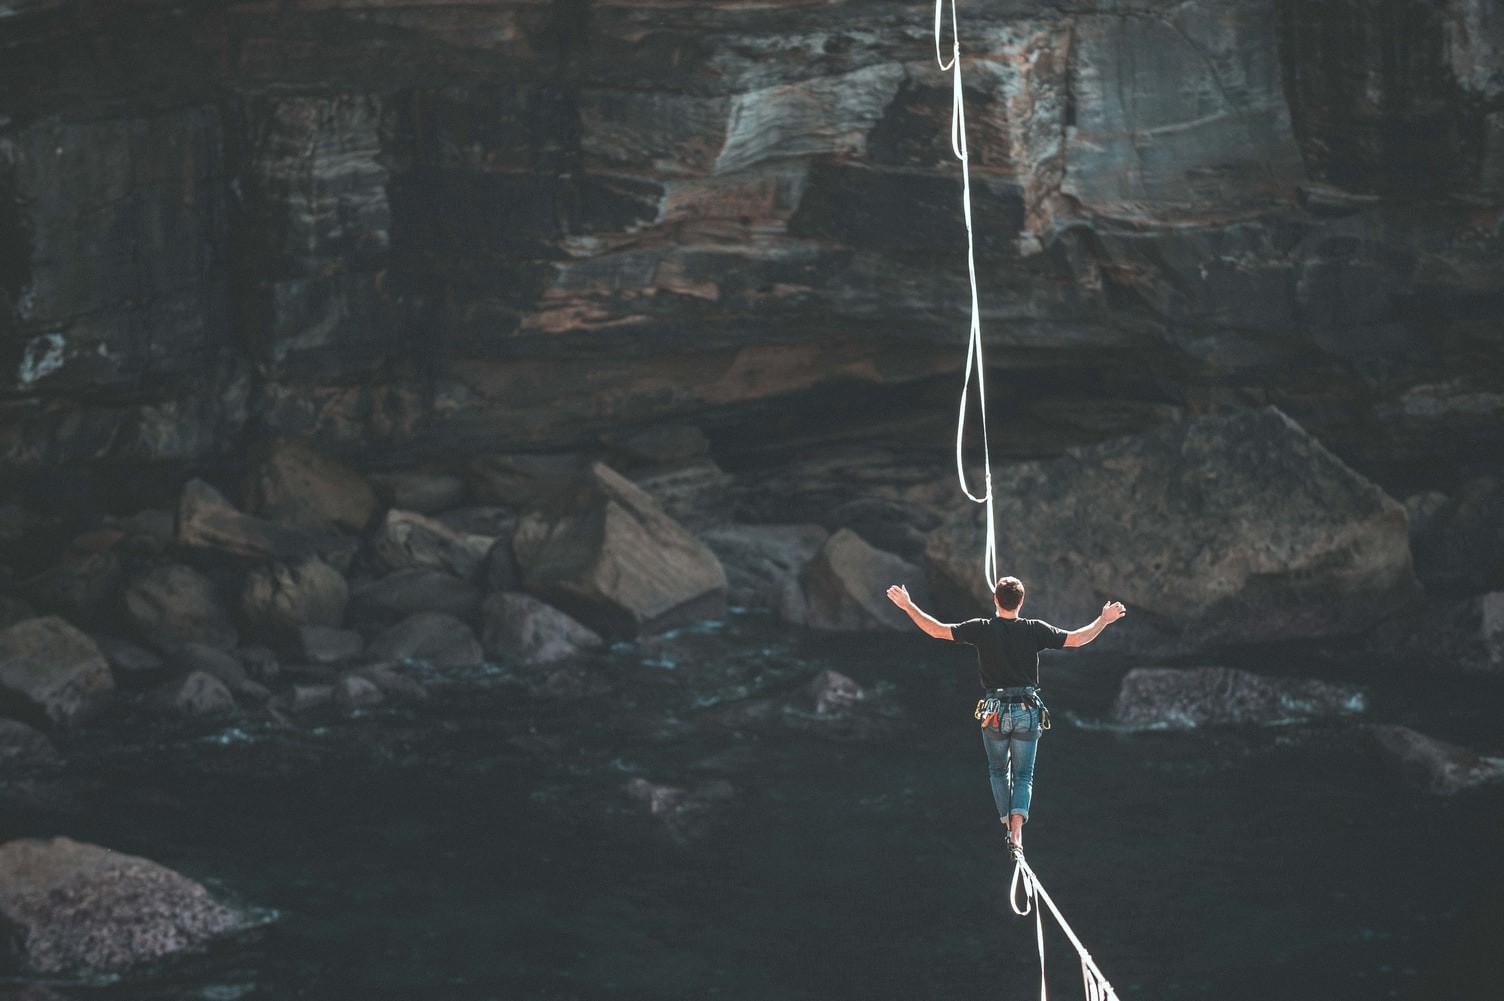 Man balancing on rope over a ravine.